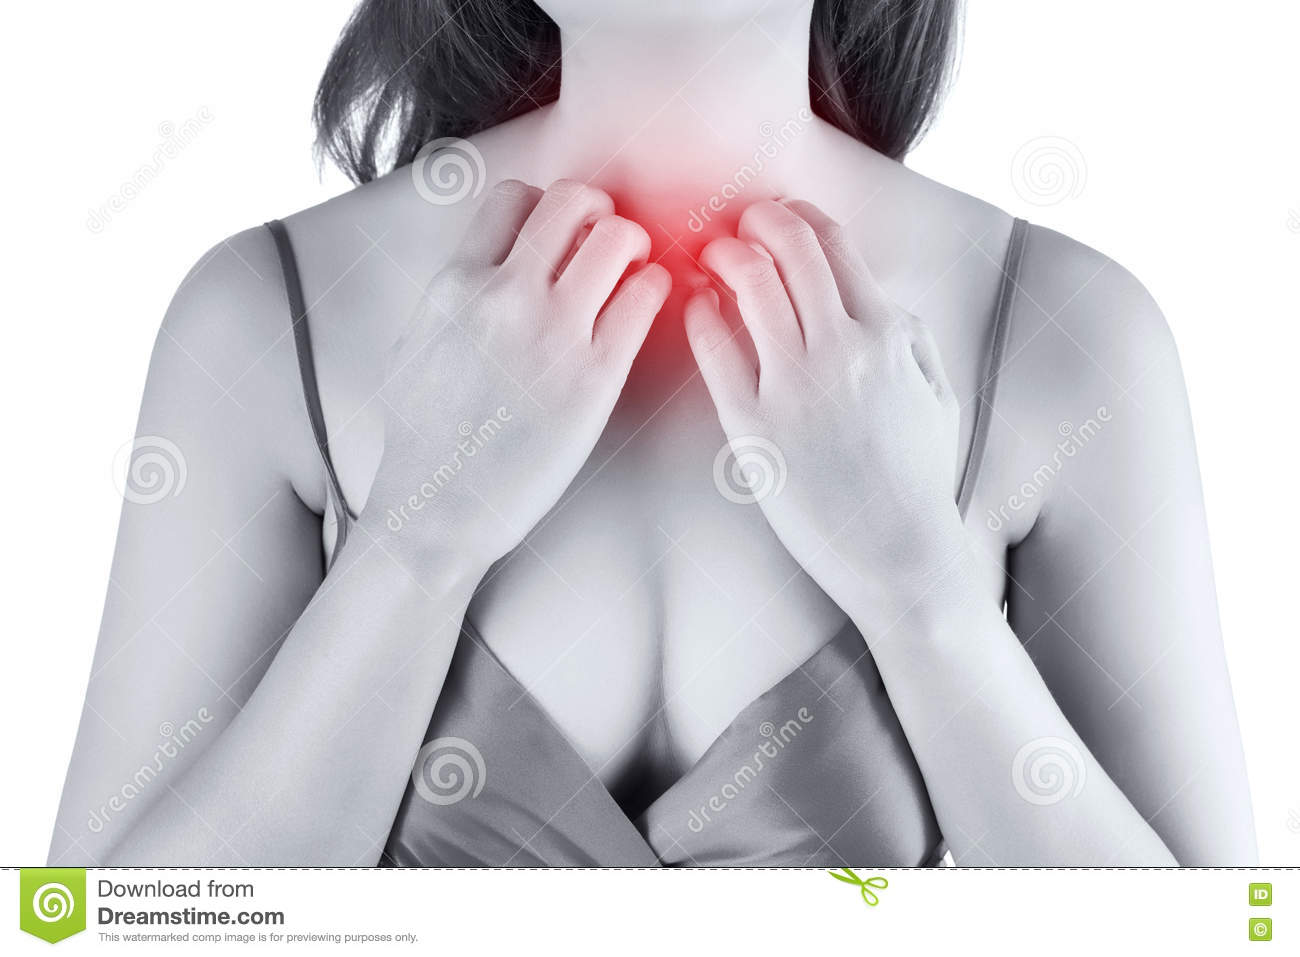 Woman scratching her itchy chest